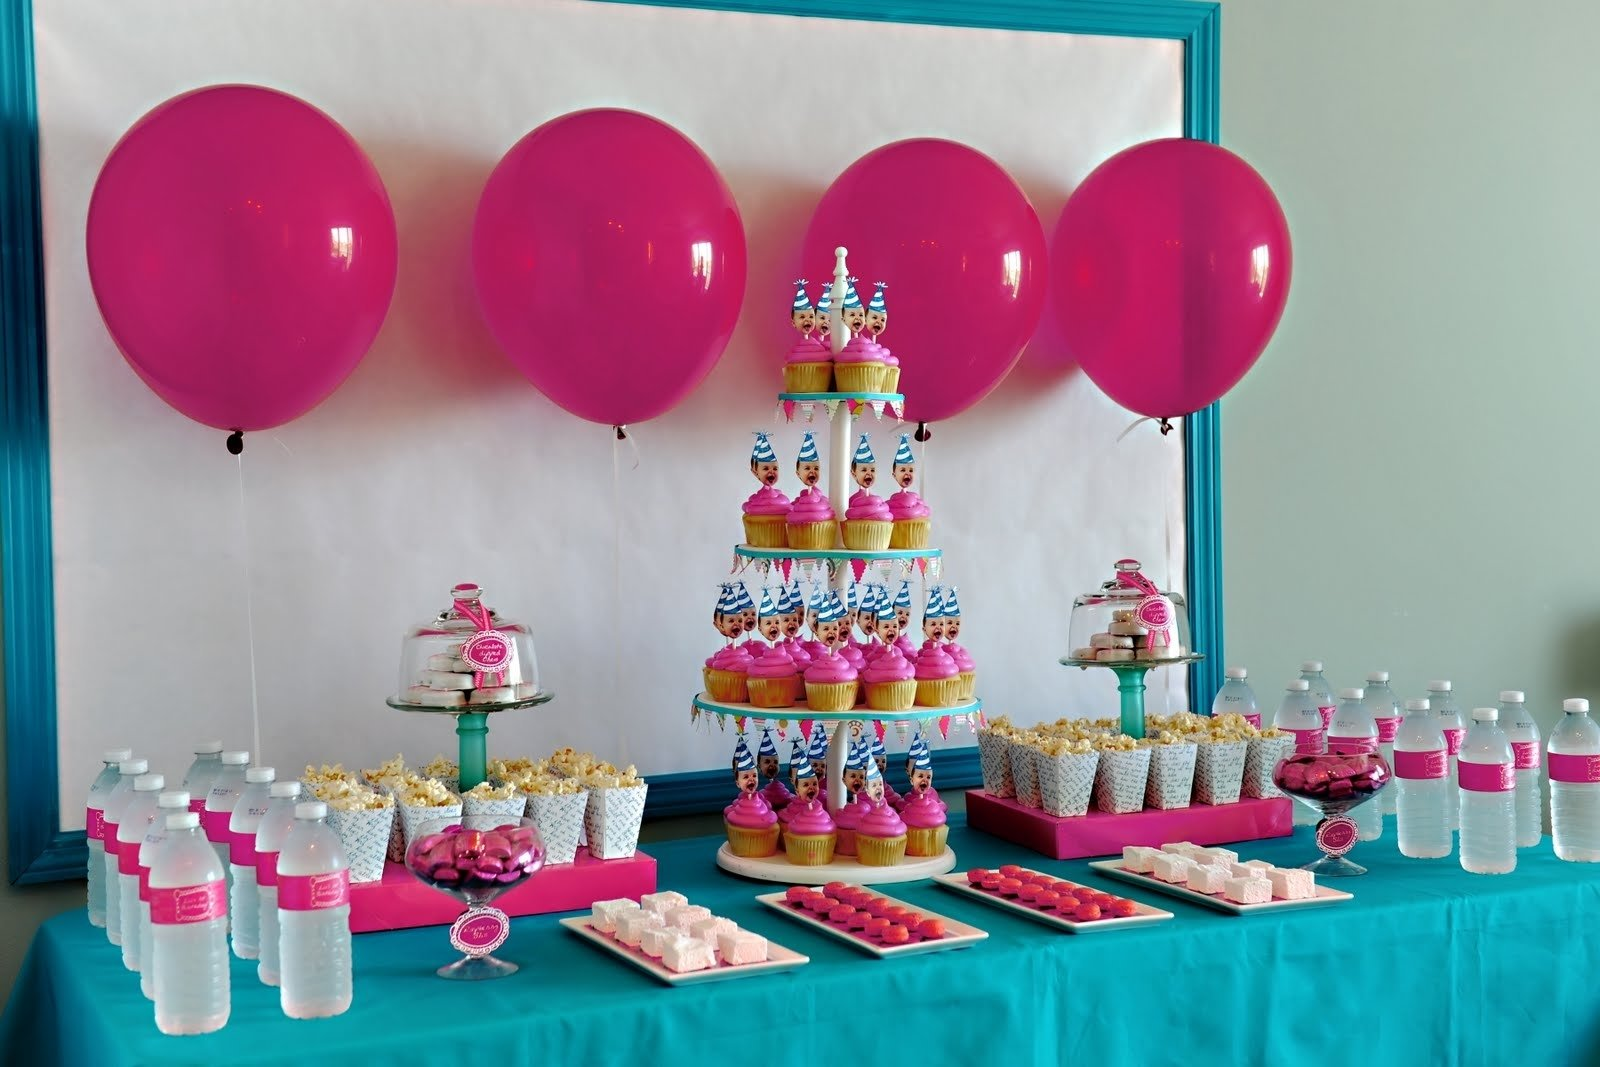 10 Nice Birthday Ideas For 2 Year Old Daughter themes birthday a 2 year old birthday party ideas with 2 year old 2021